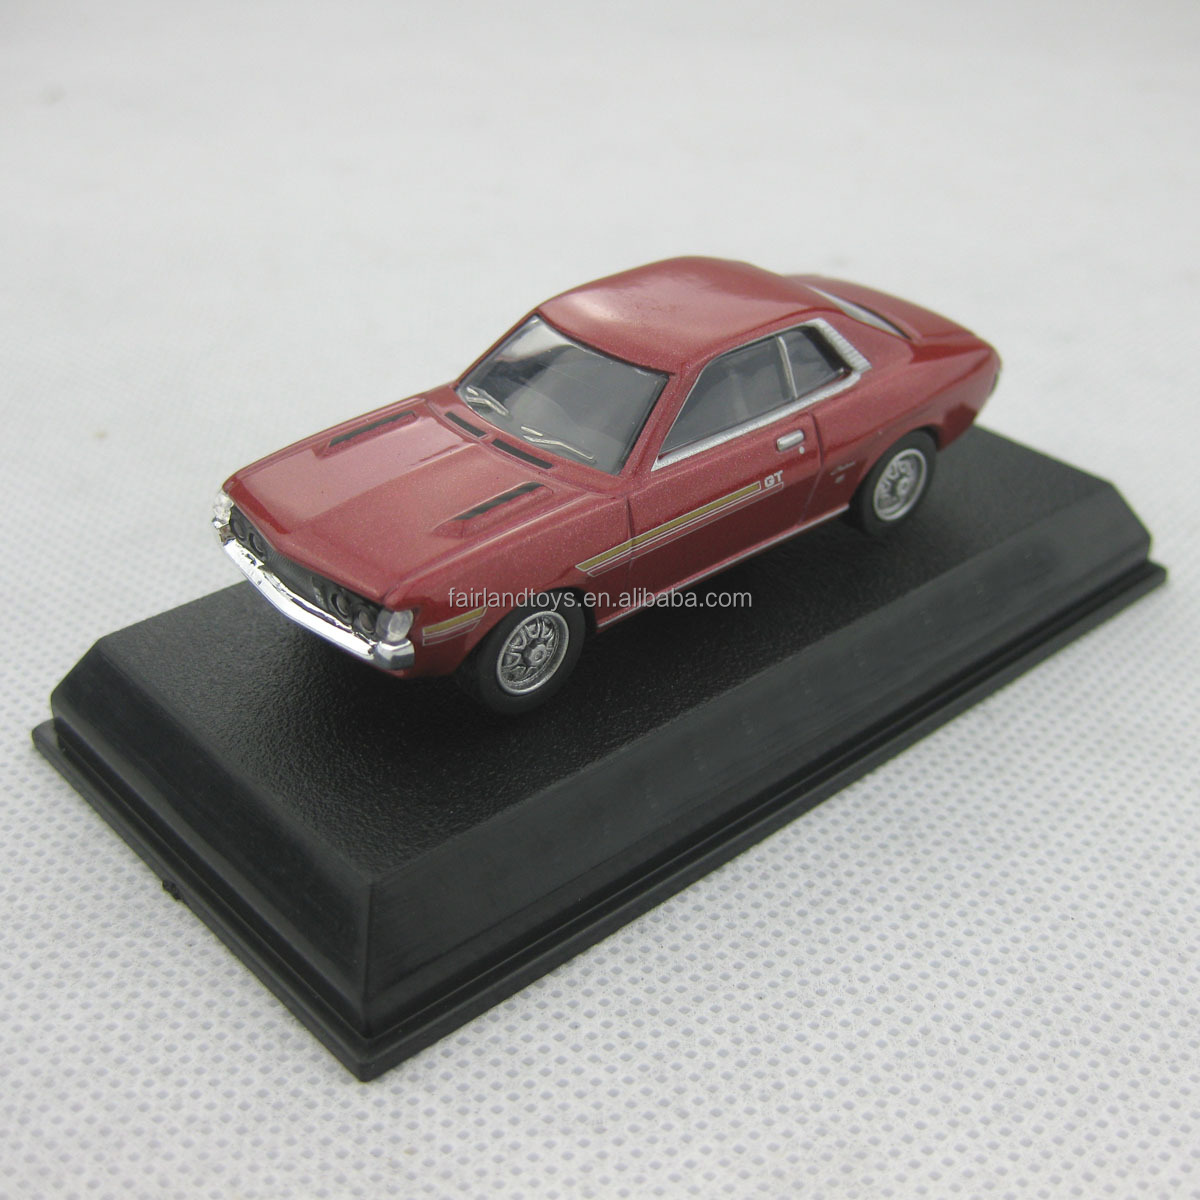 1:64 OEM diecast vehicle,custom made metal car